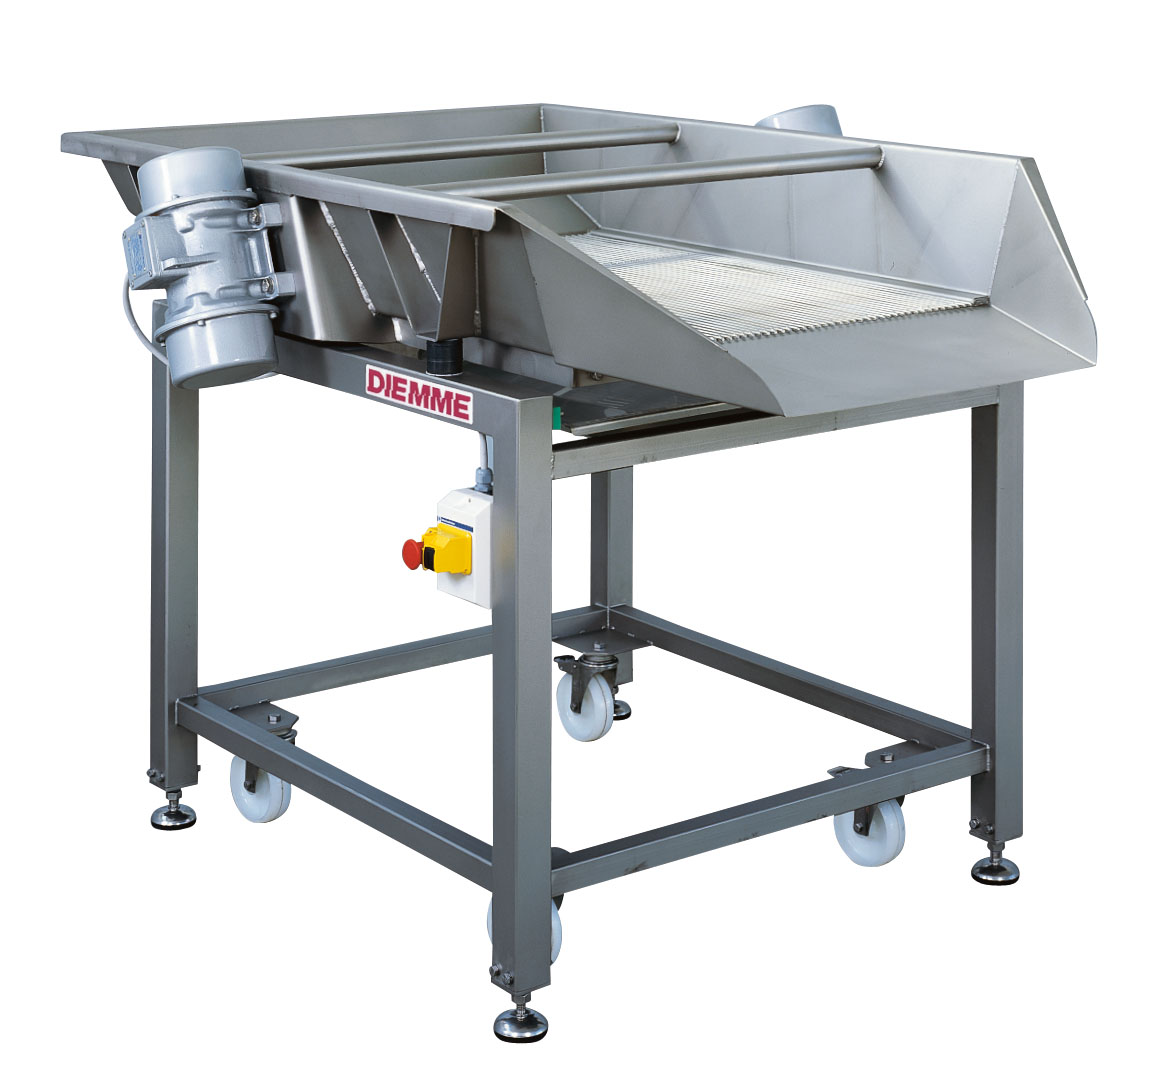 Diemme Kappa grape sorting equipment